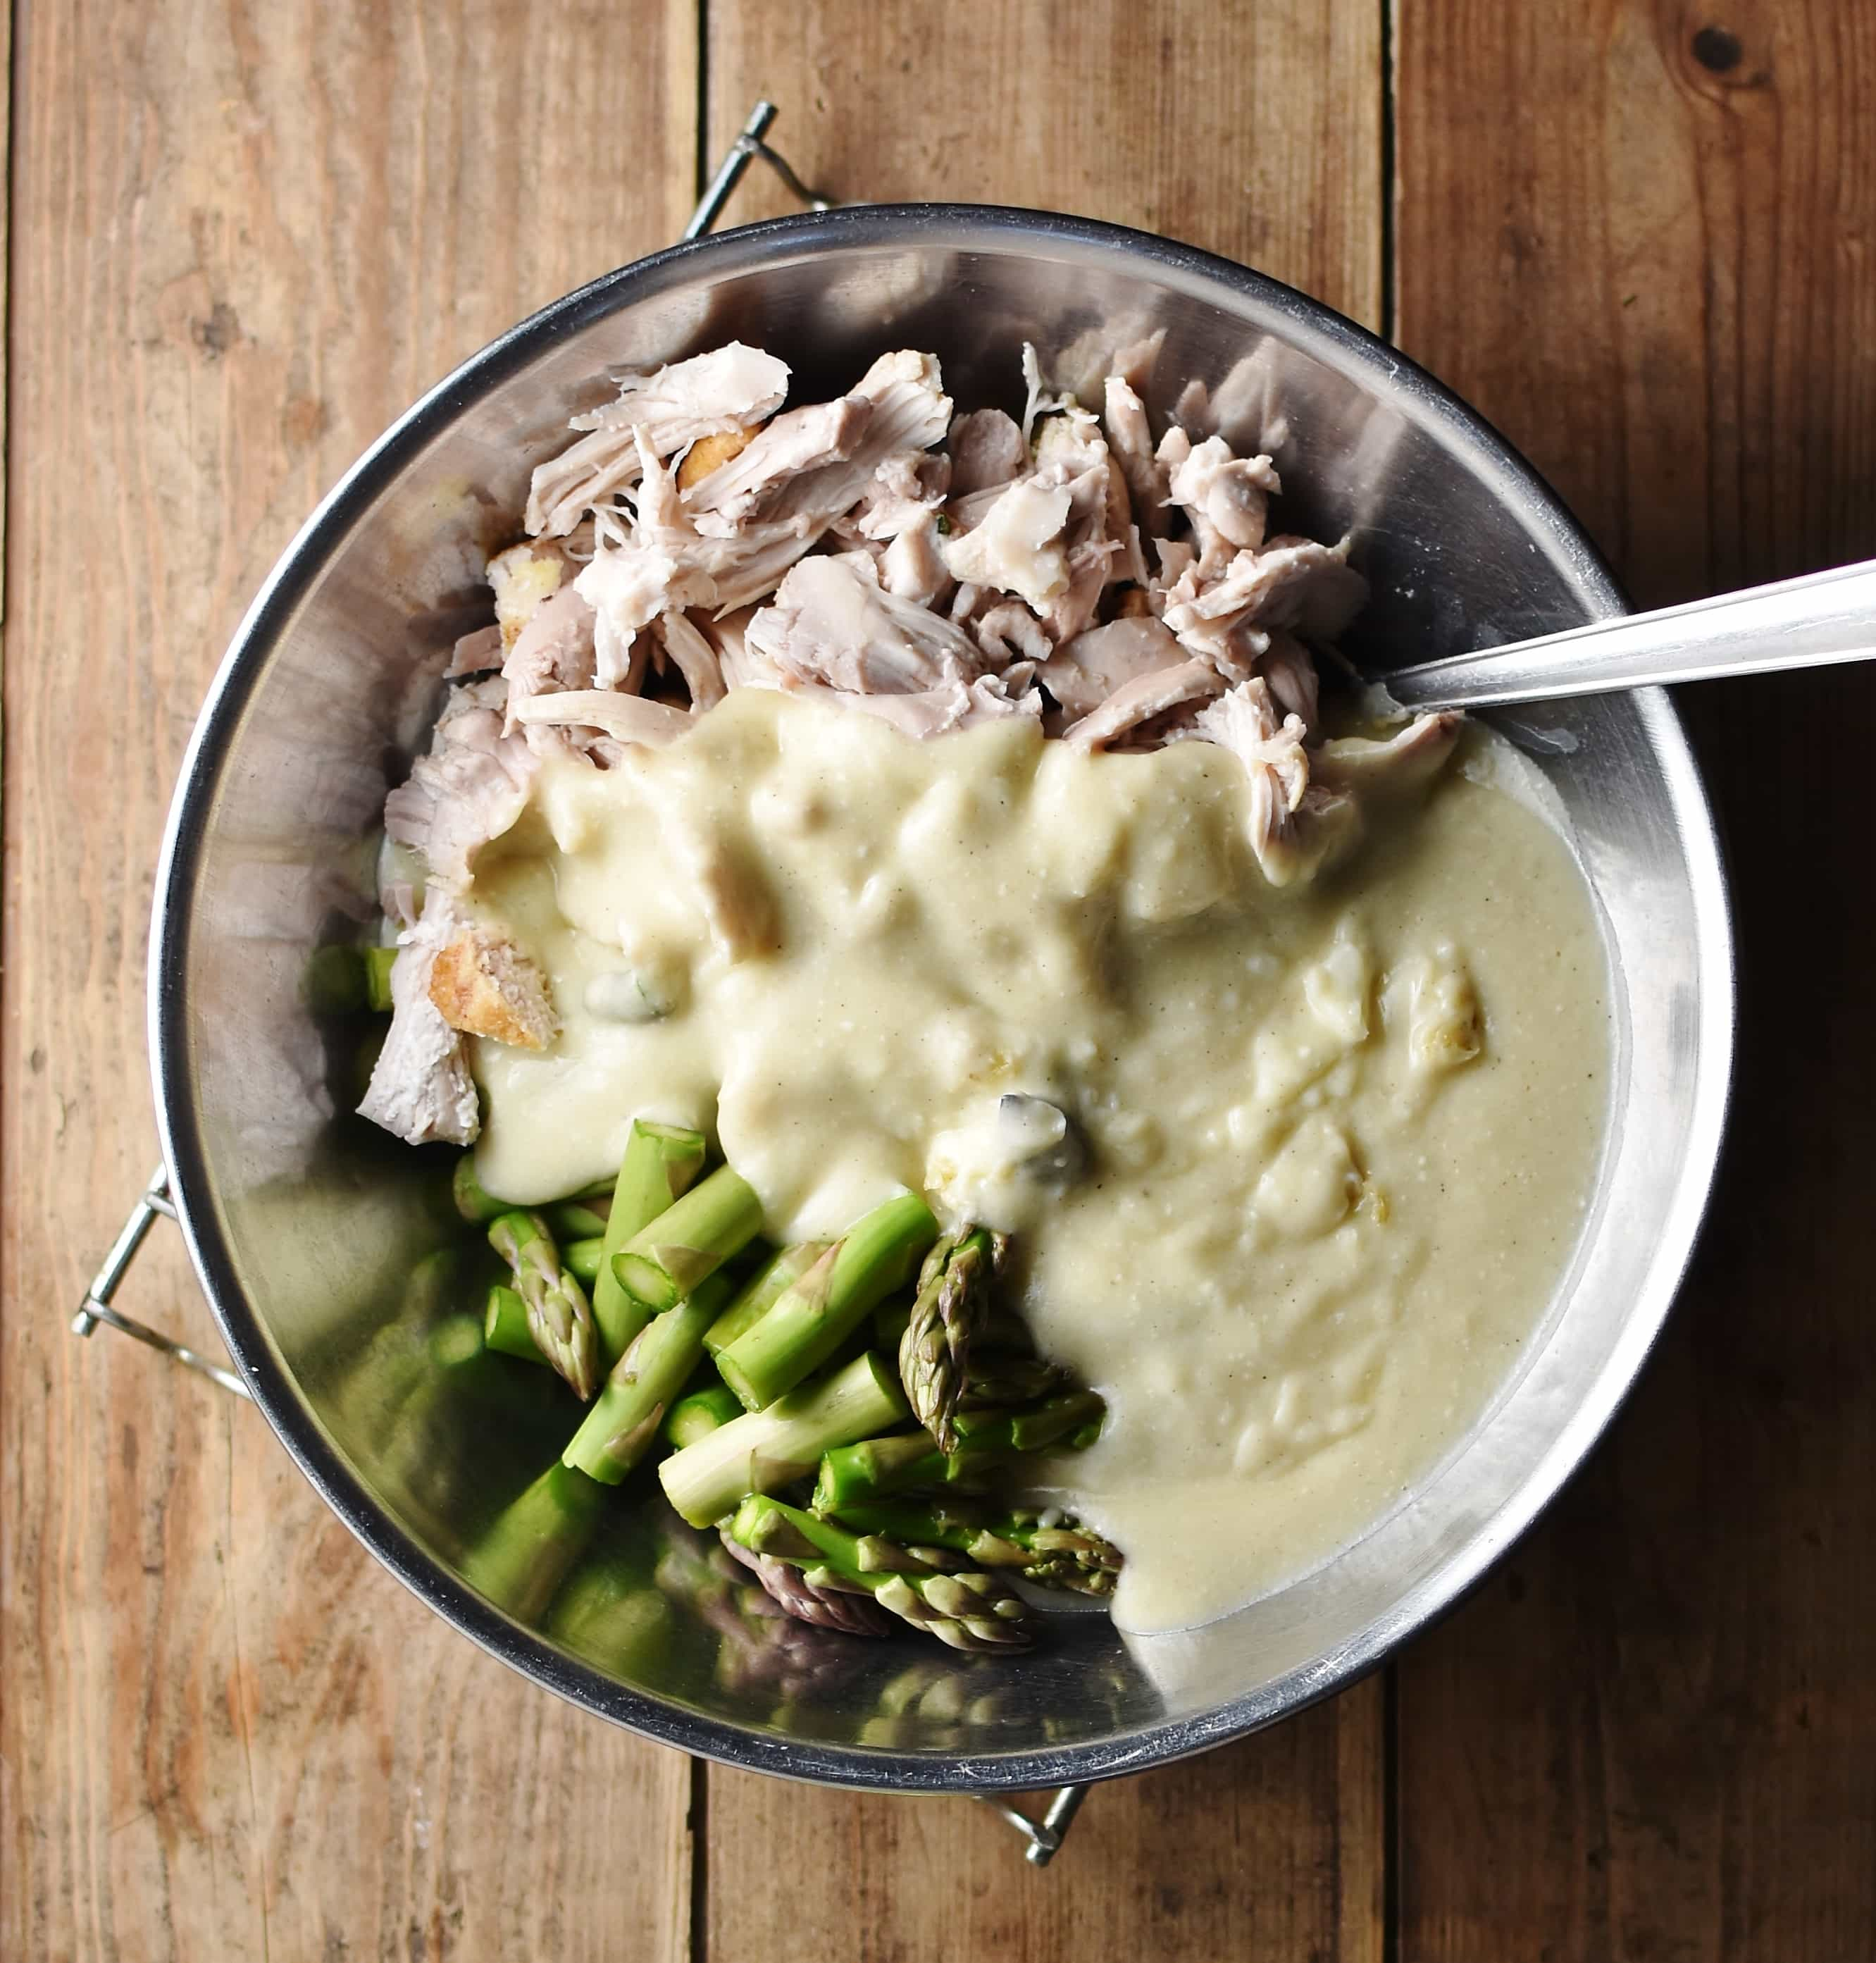 Chopped asparagus, shredded chicken and creamy sauce with spoon in large metal bowl.